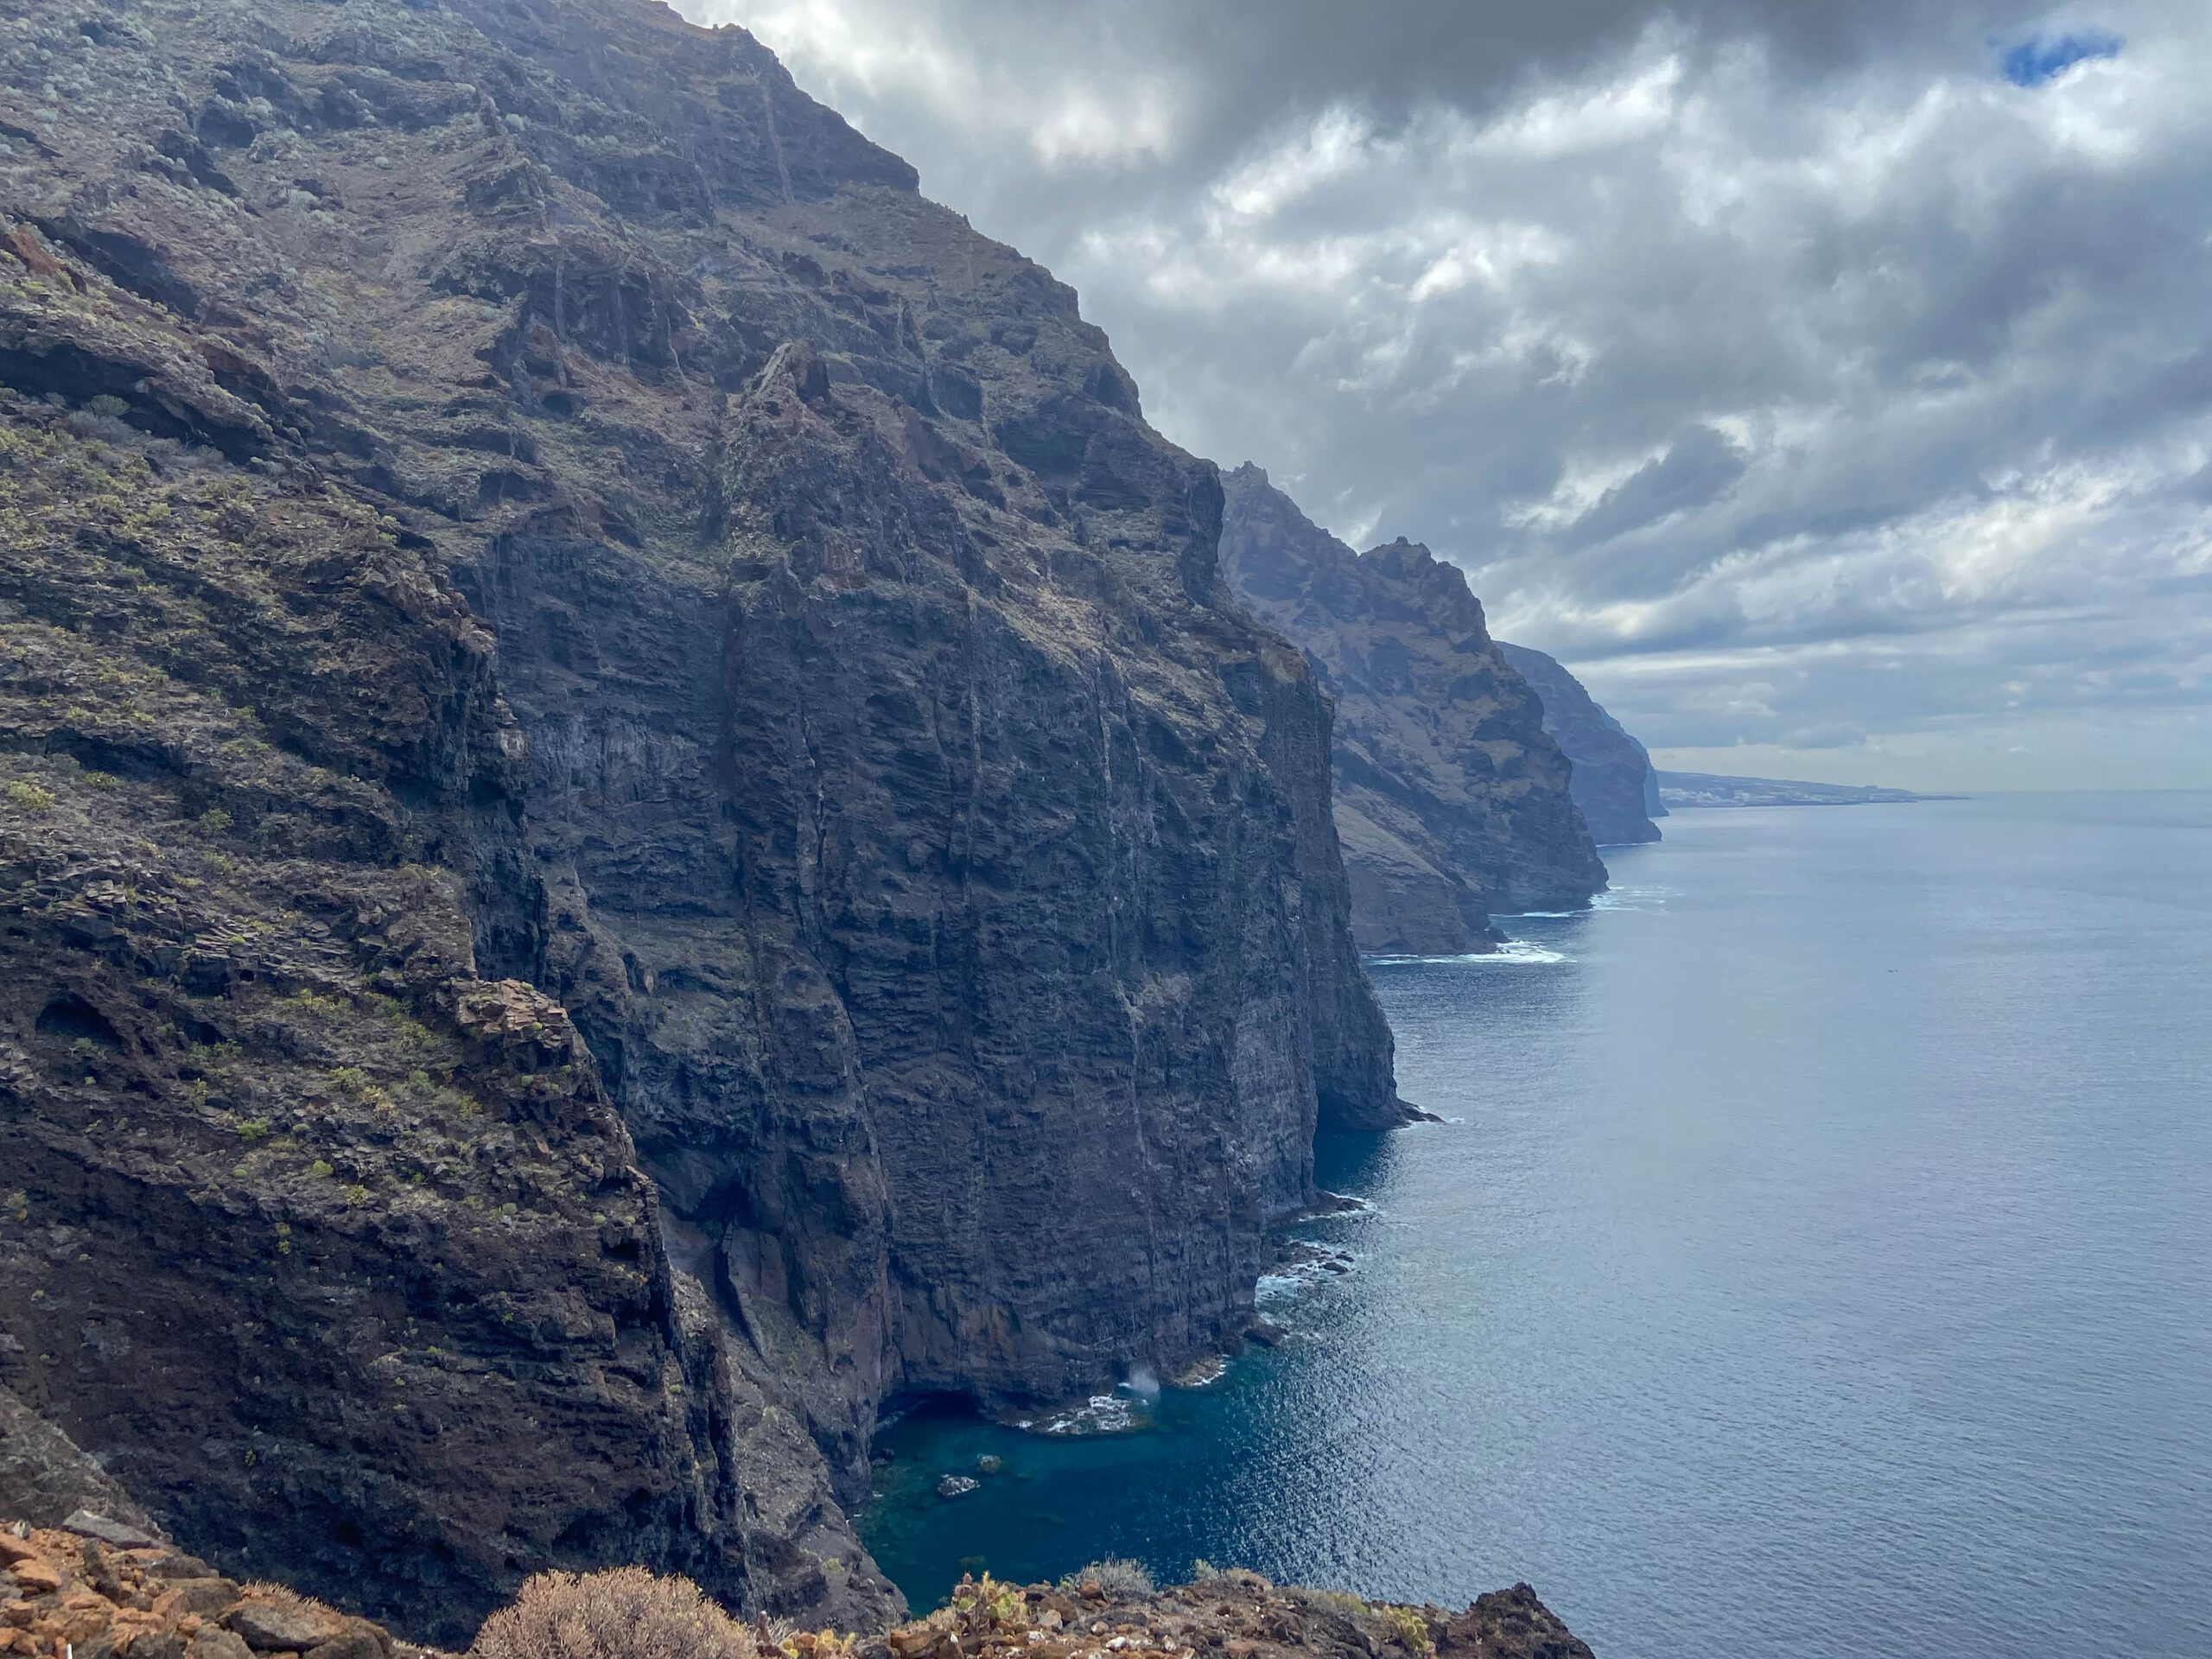 View of the cliffs and Los Gigantes in the background from the path on the cliff edge